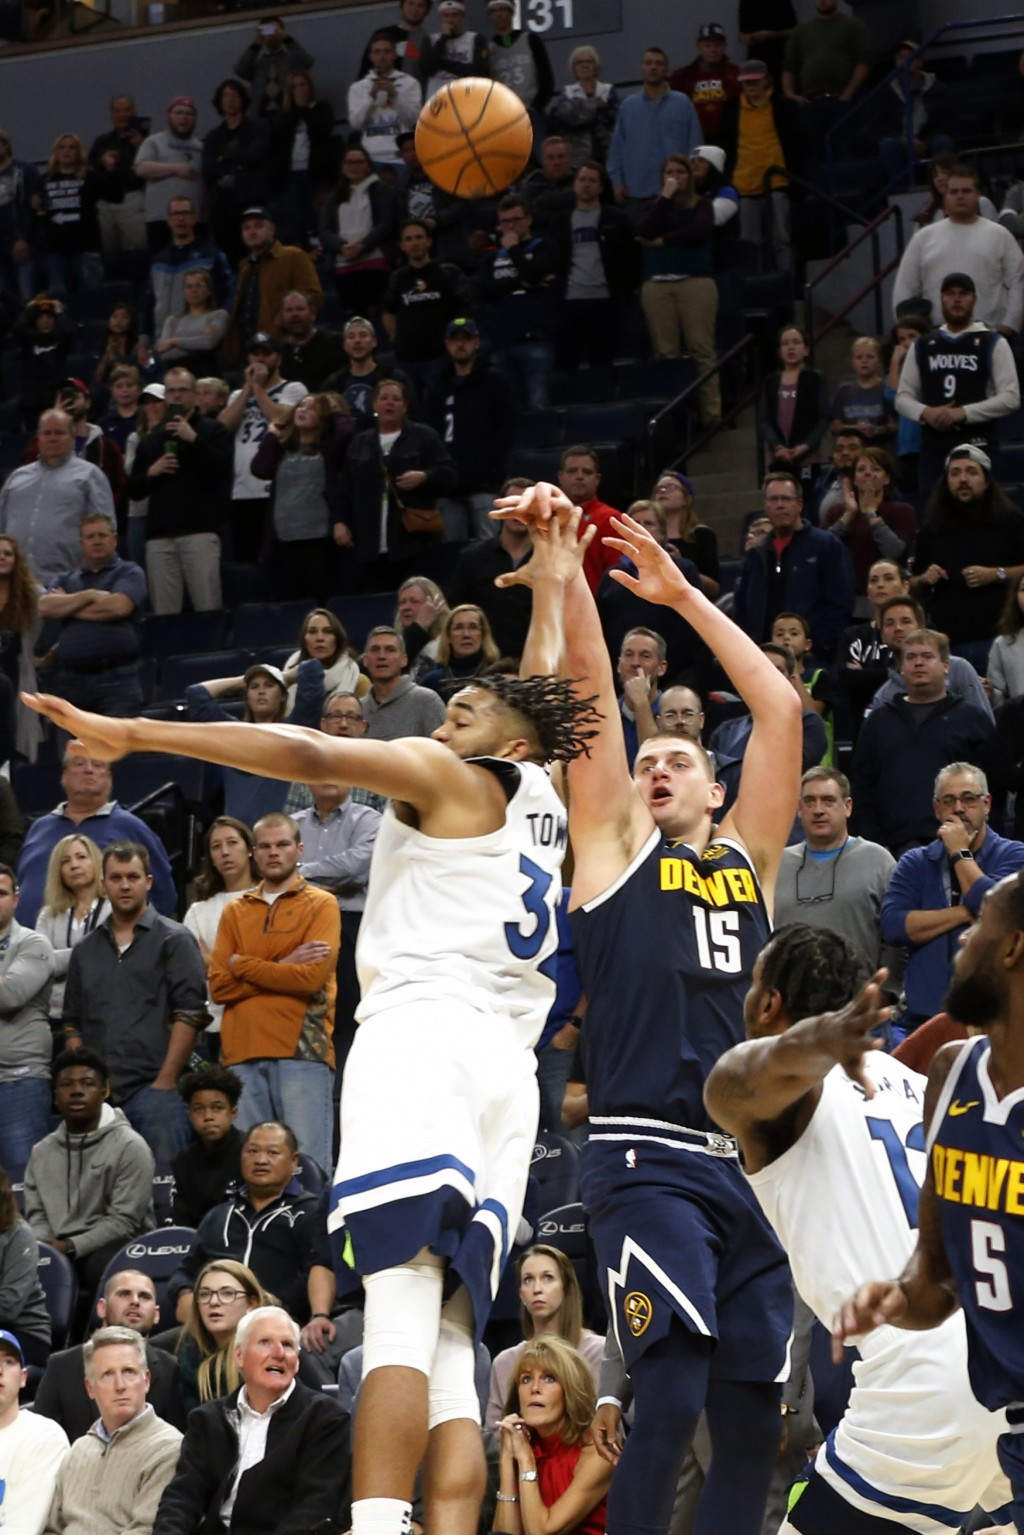 Denver Nuggets' Nikola Jokic, right, of Serbia, shoots the go-ahead basket over Minnesota Timberwolves' Karl-Anthony Towns in the final seconds in ove...